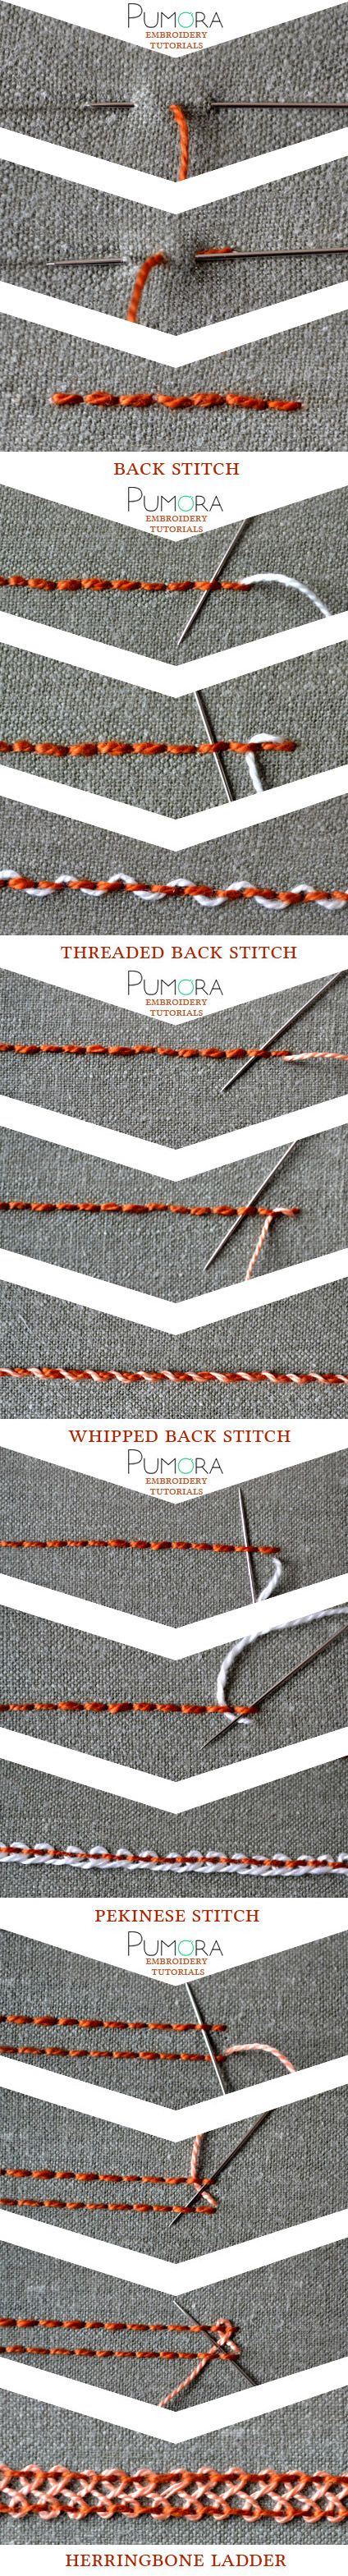 embroidery tutorials: backstitch with variations bordado, ricamo, broderie, sticken                                                                                                                                                                                 Más